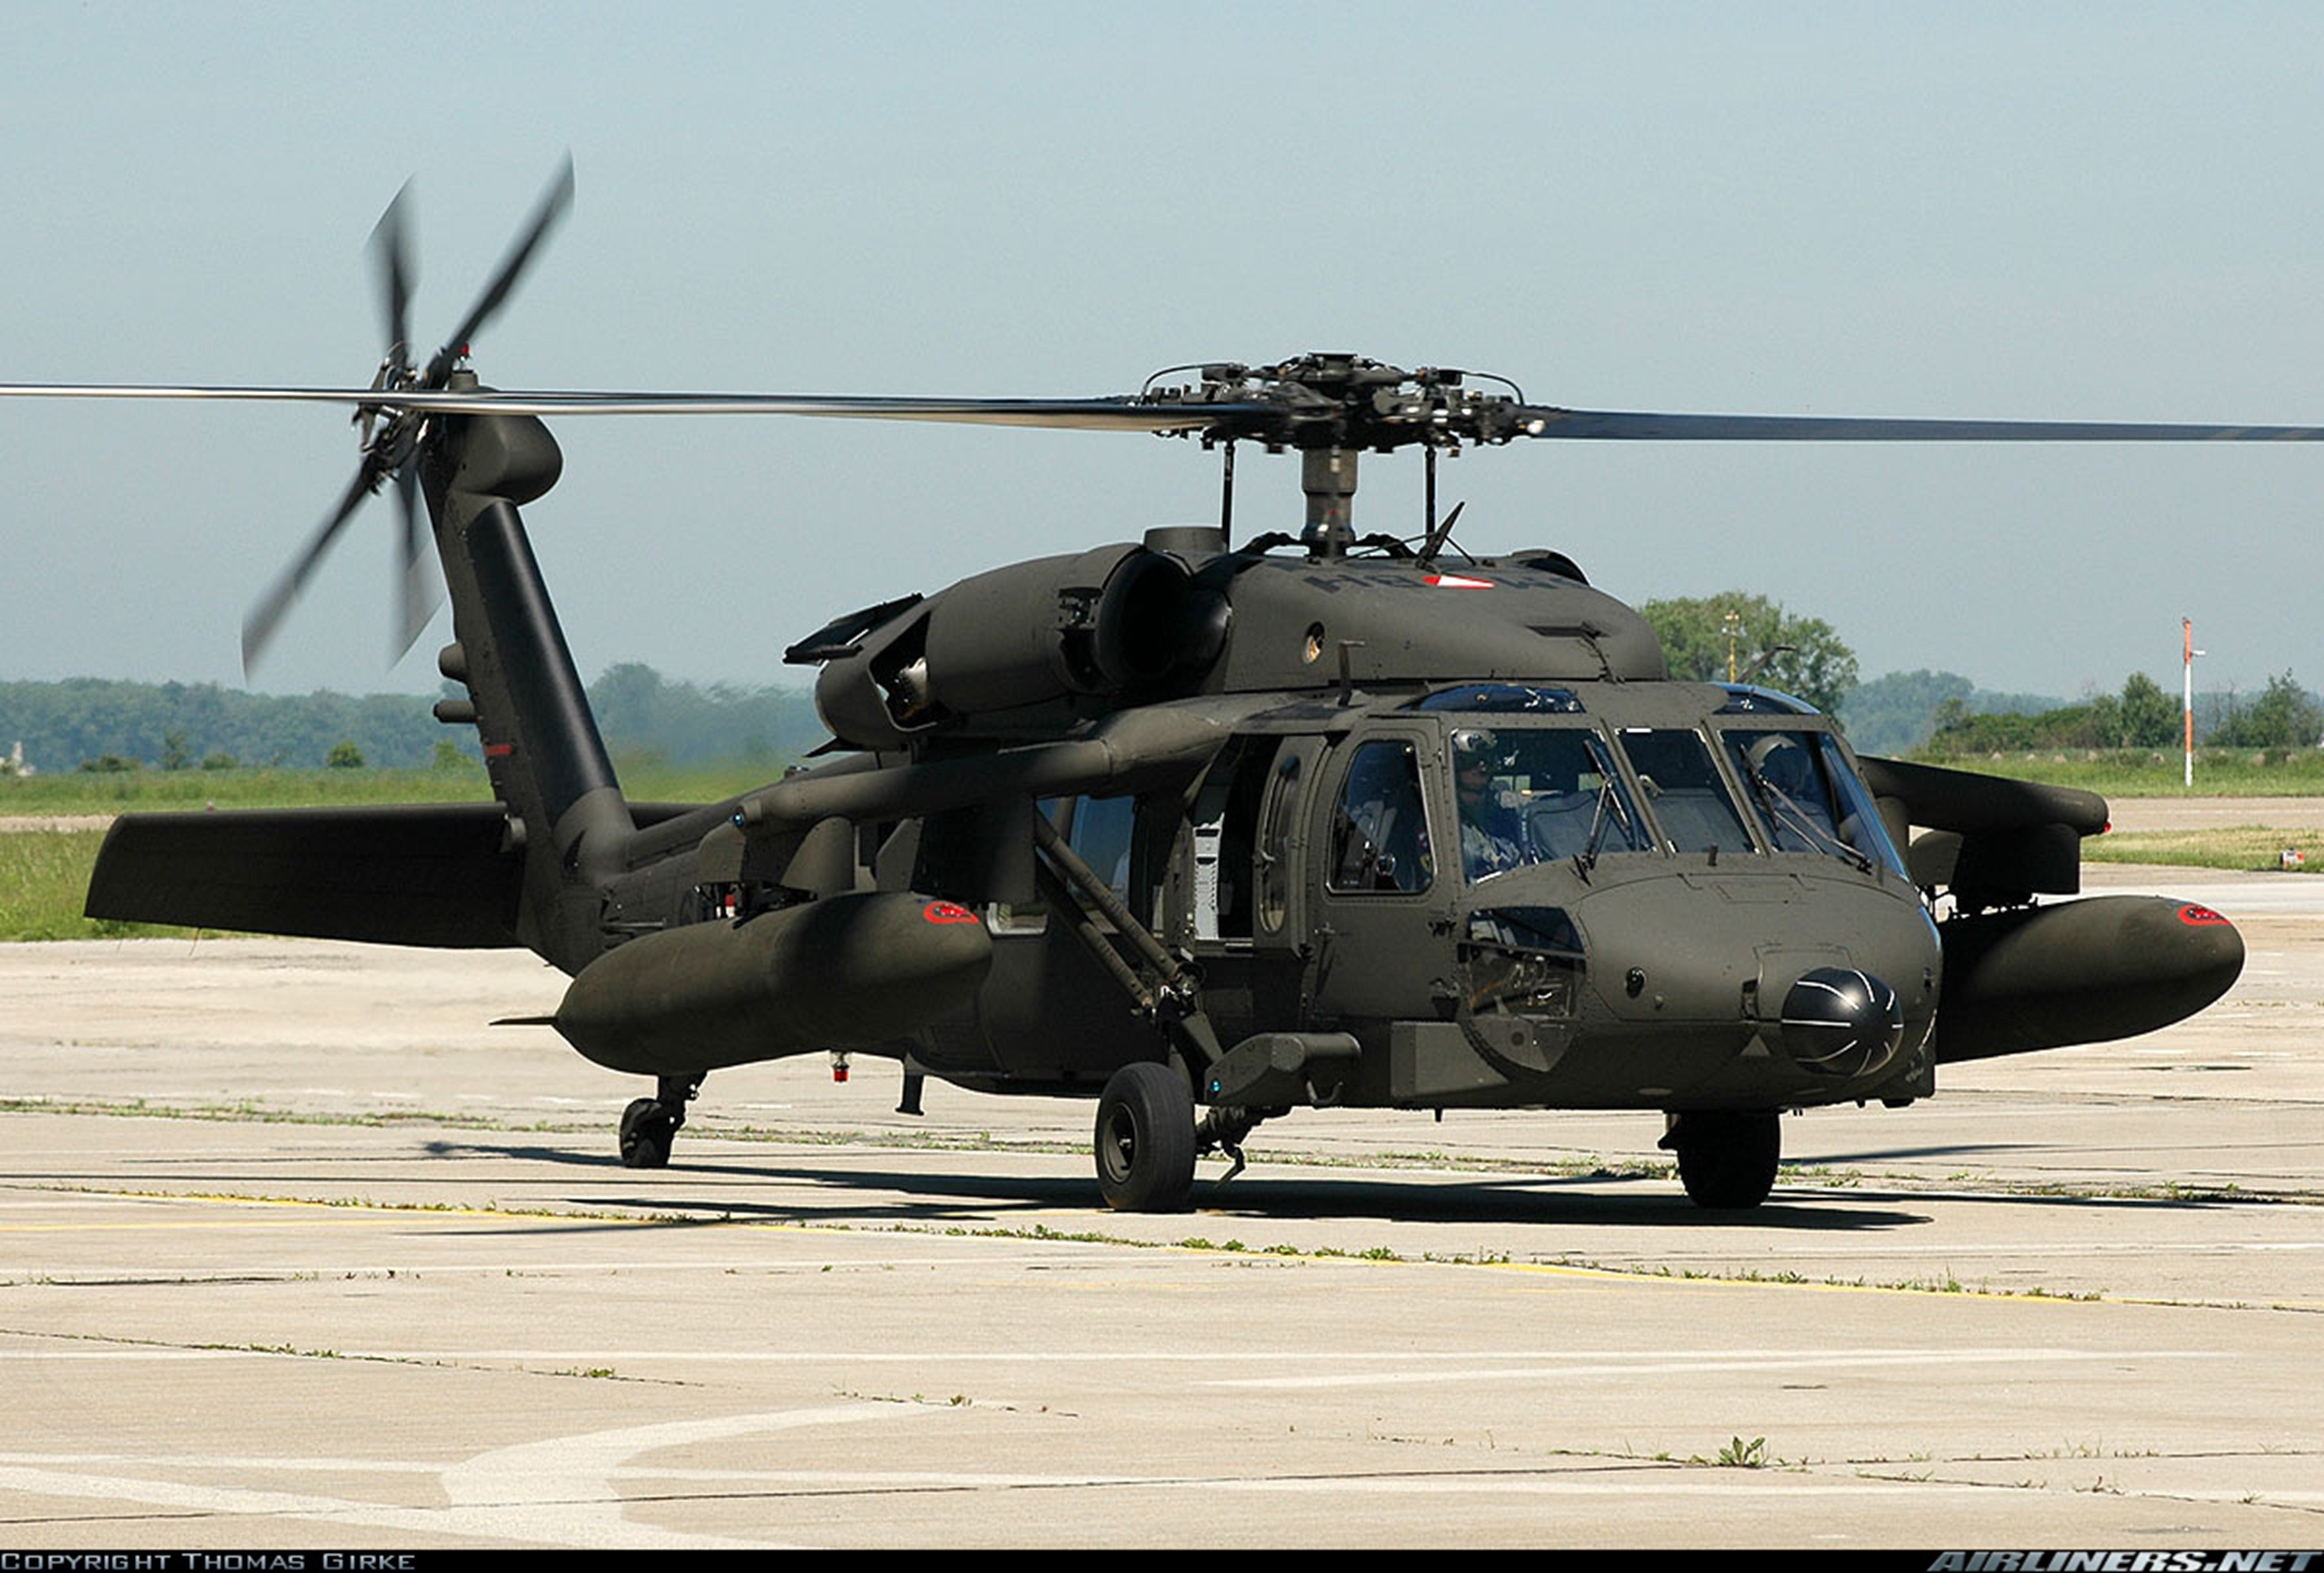 russian military helicopters sale with Helicopter Aircraft Transport Austria Military Army on Watch also 250909 russian french aphibious ship besides How Can A Helicopter Be Designed Without A Tail Rotor additionally K Max Unmanned Aircraft System additionally Big.